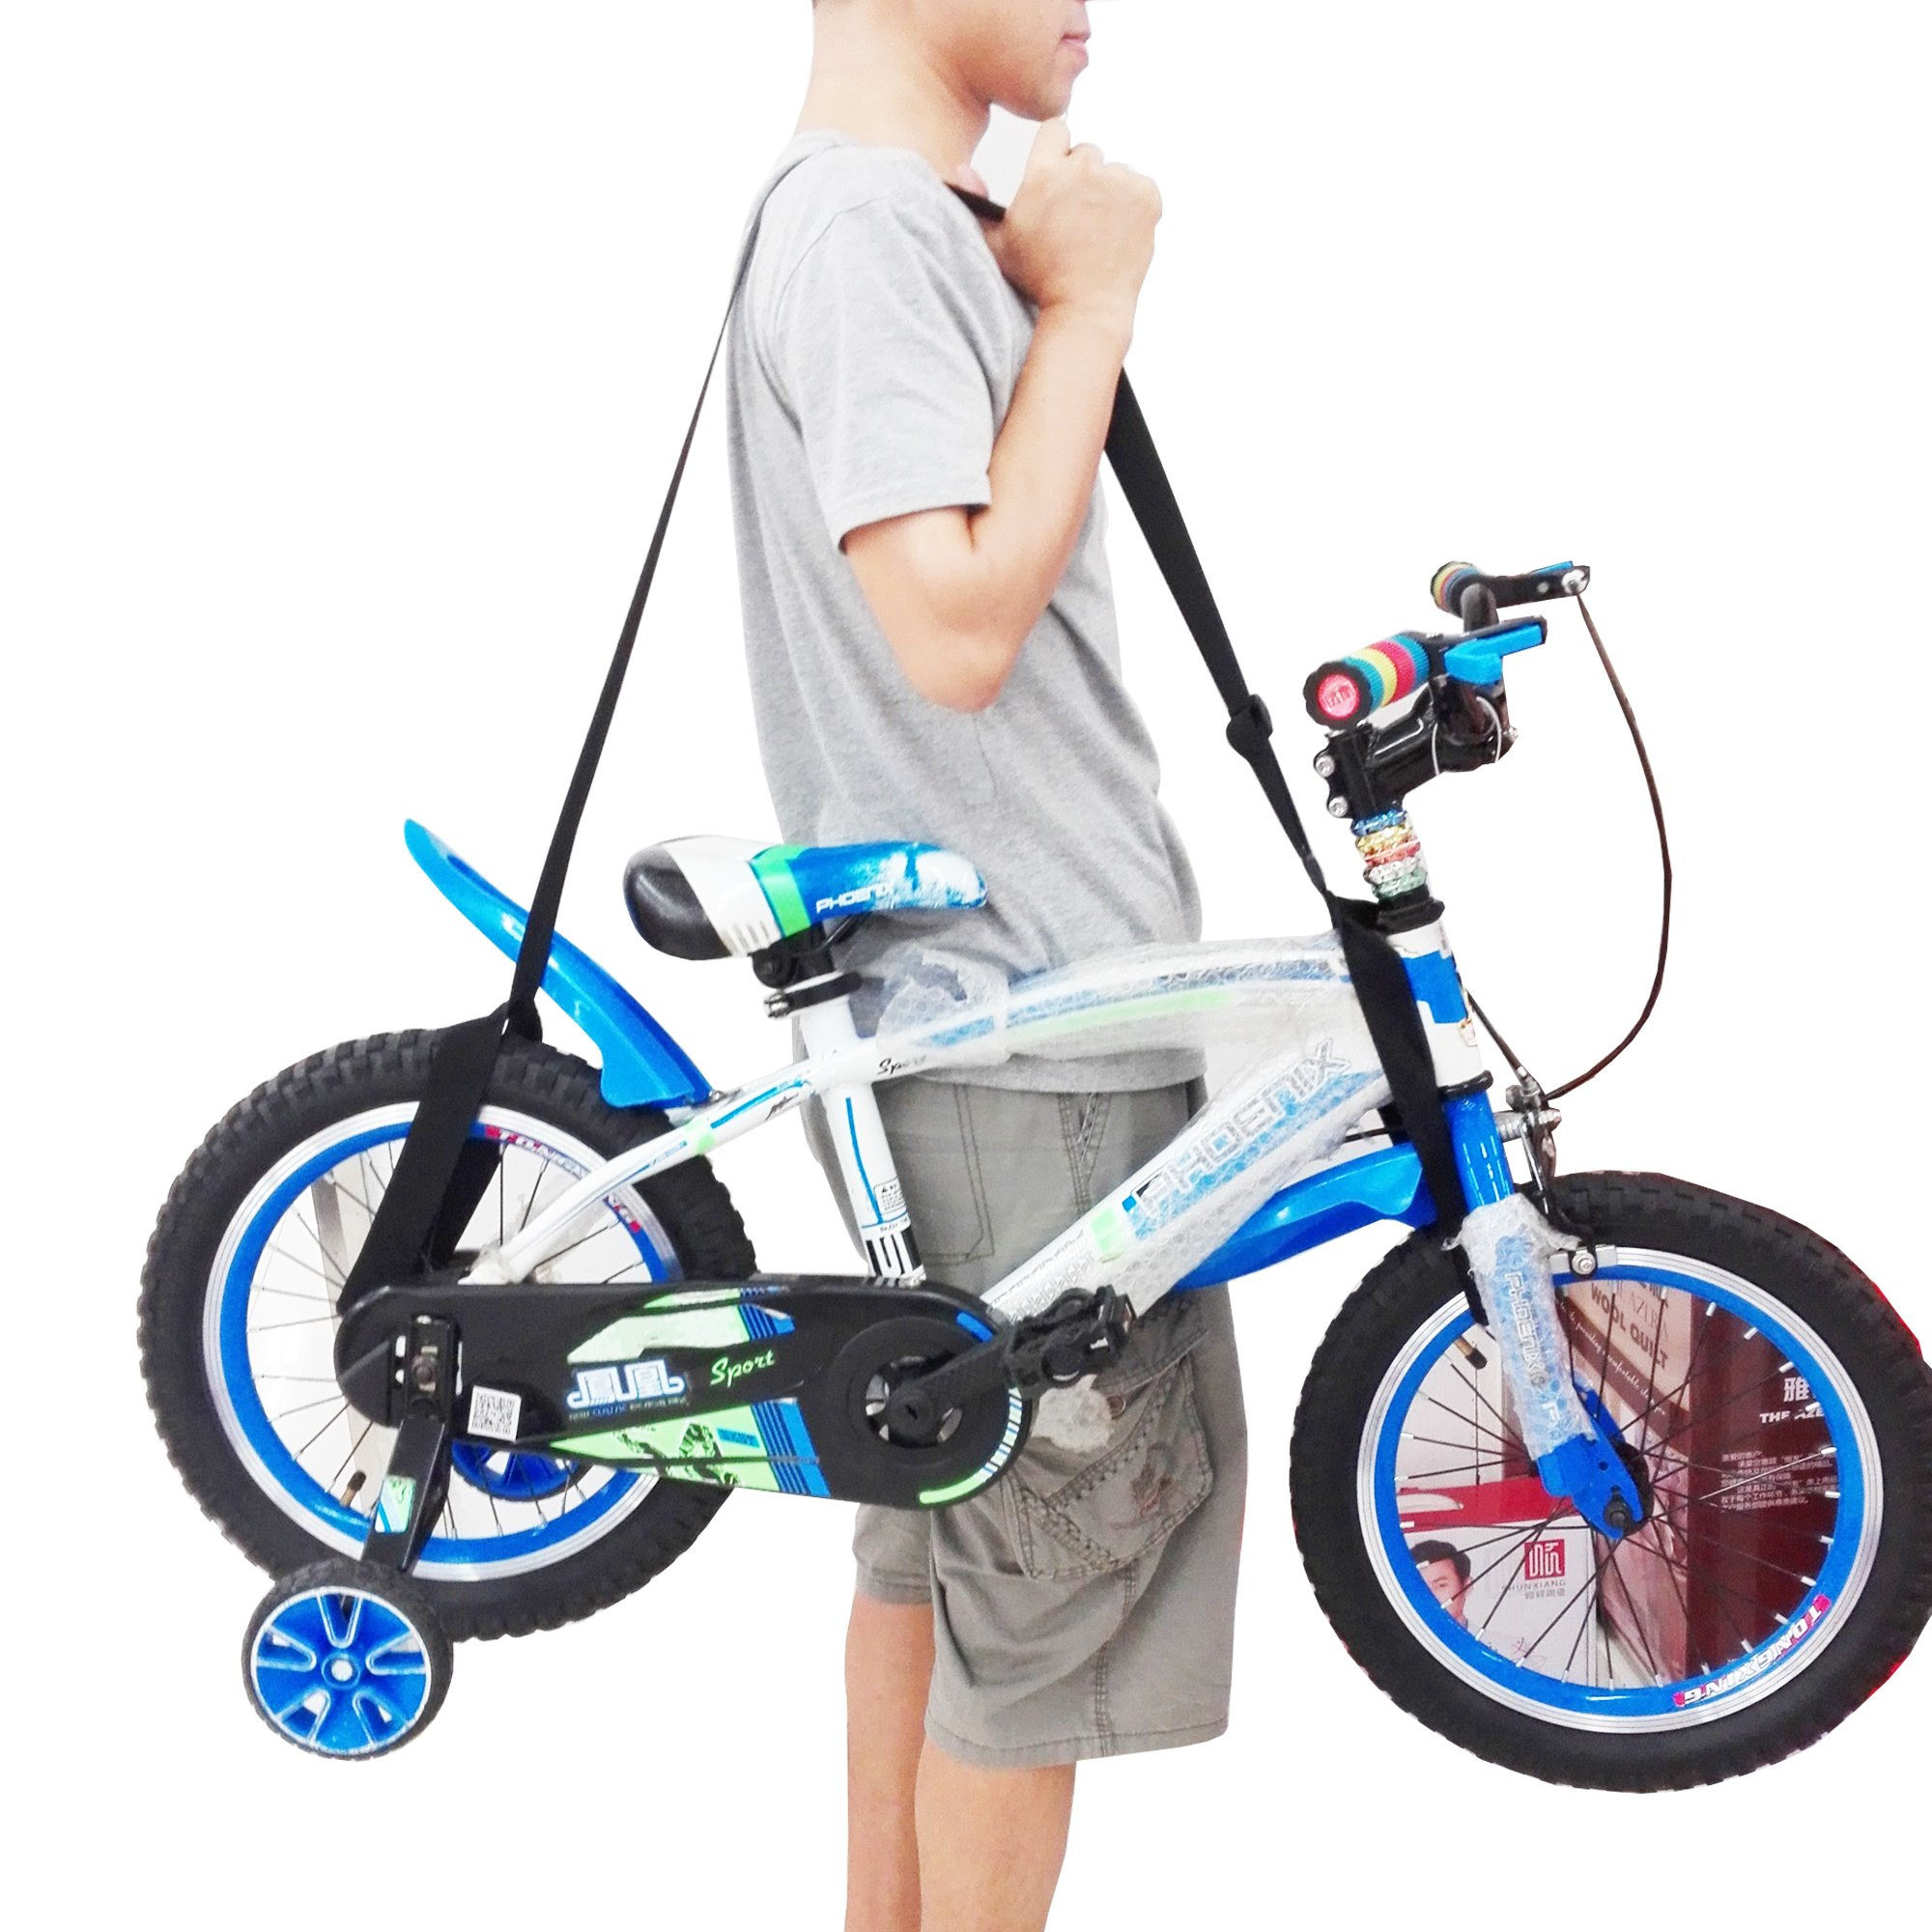 One Weight lifting Shoulder Carrying Strap for Kids Balance Bike, Scooter , Foldable Bicycle - No further damage to your back!